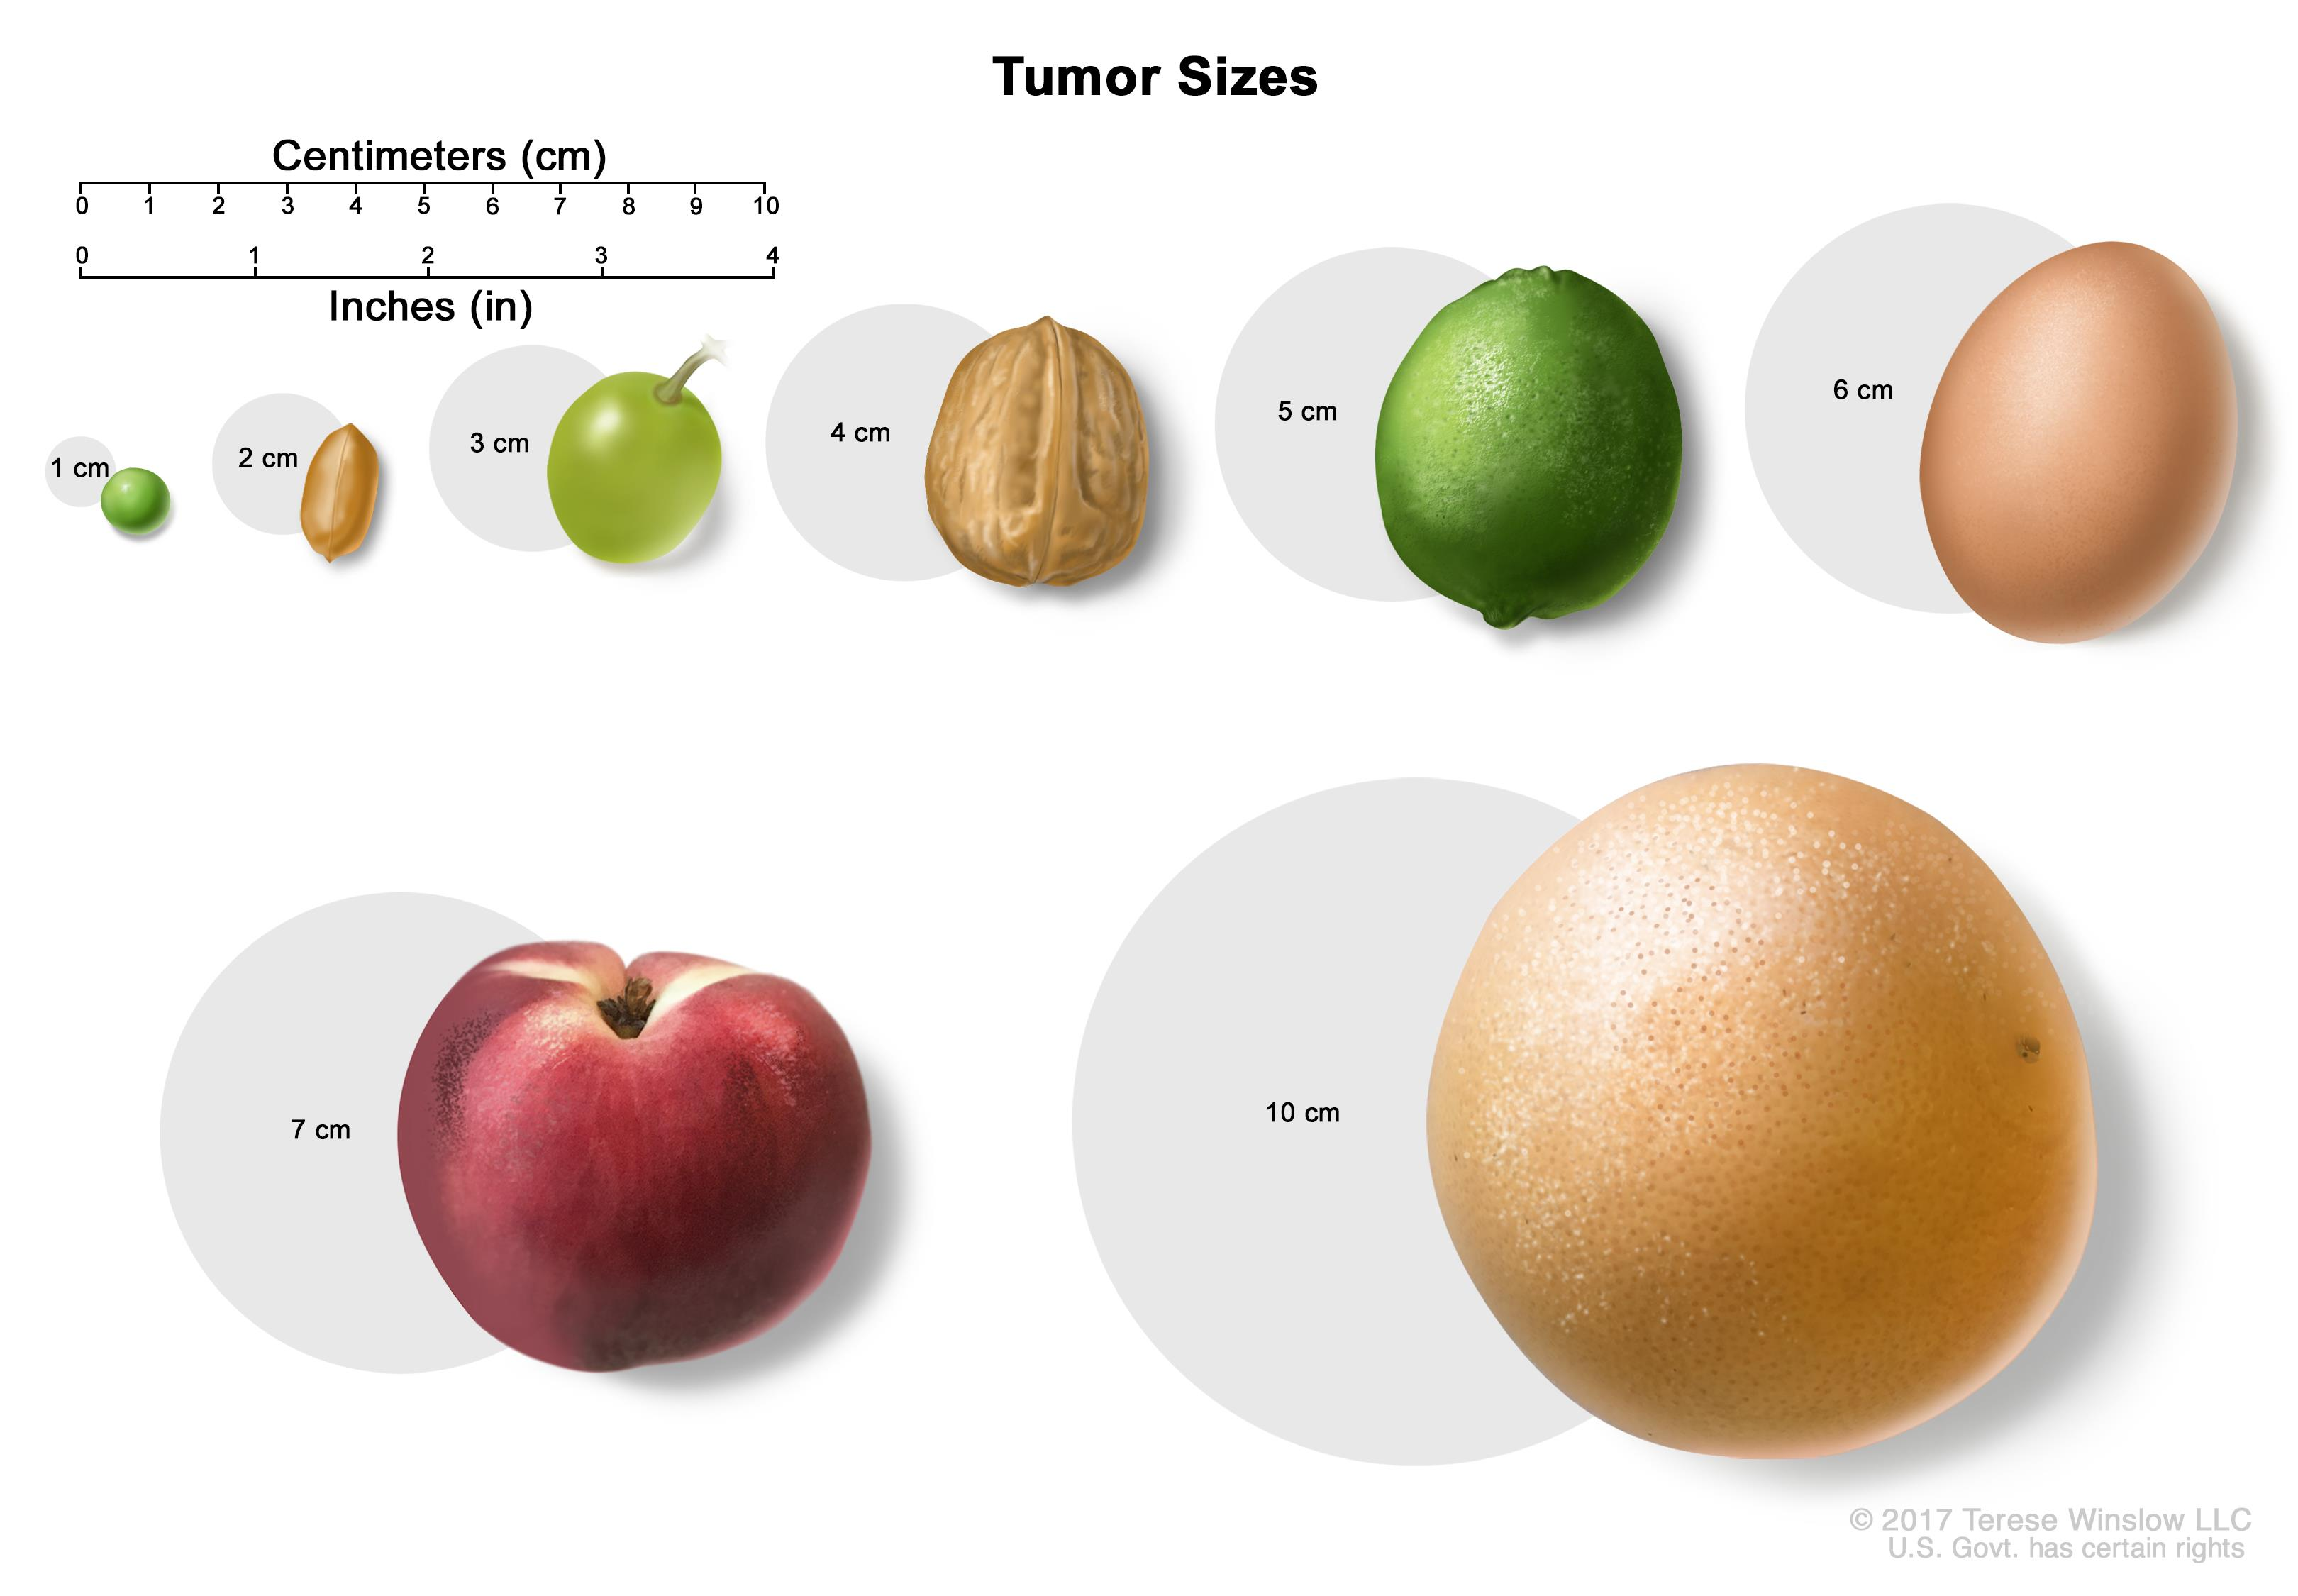 Tumor size compared to everyday objects; shows various measurements of a tumor compared to a pea, peanut, walnut, and lime.